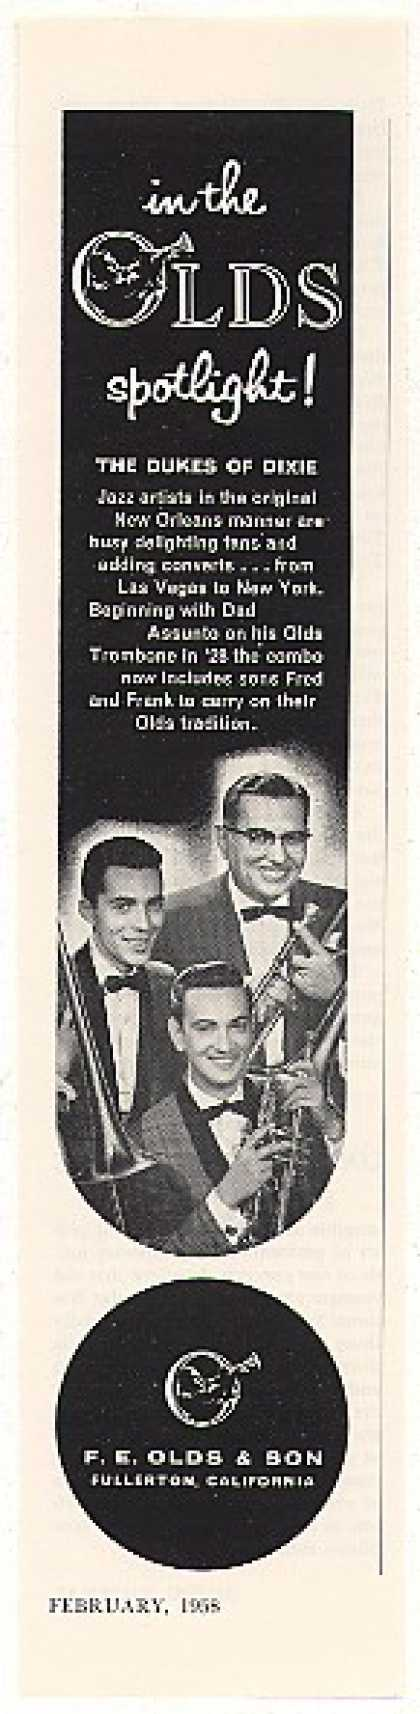 The Dukes of Dixie FE Olds Trombone Photo (1958)